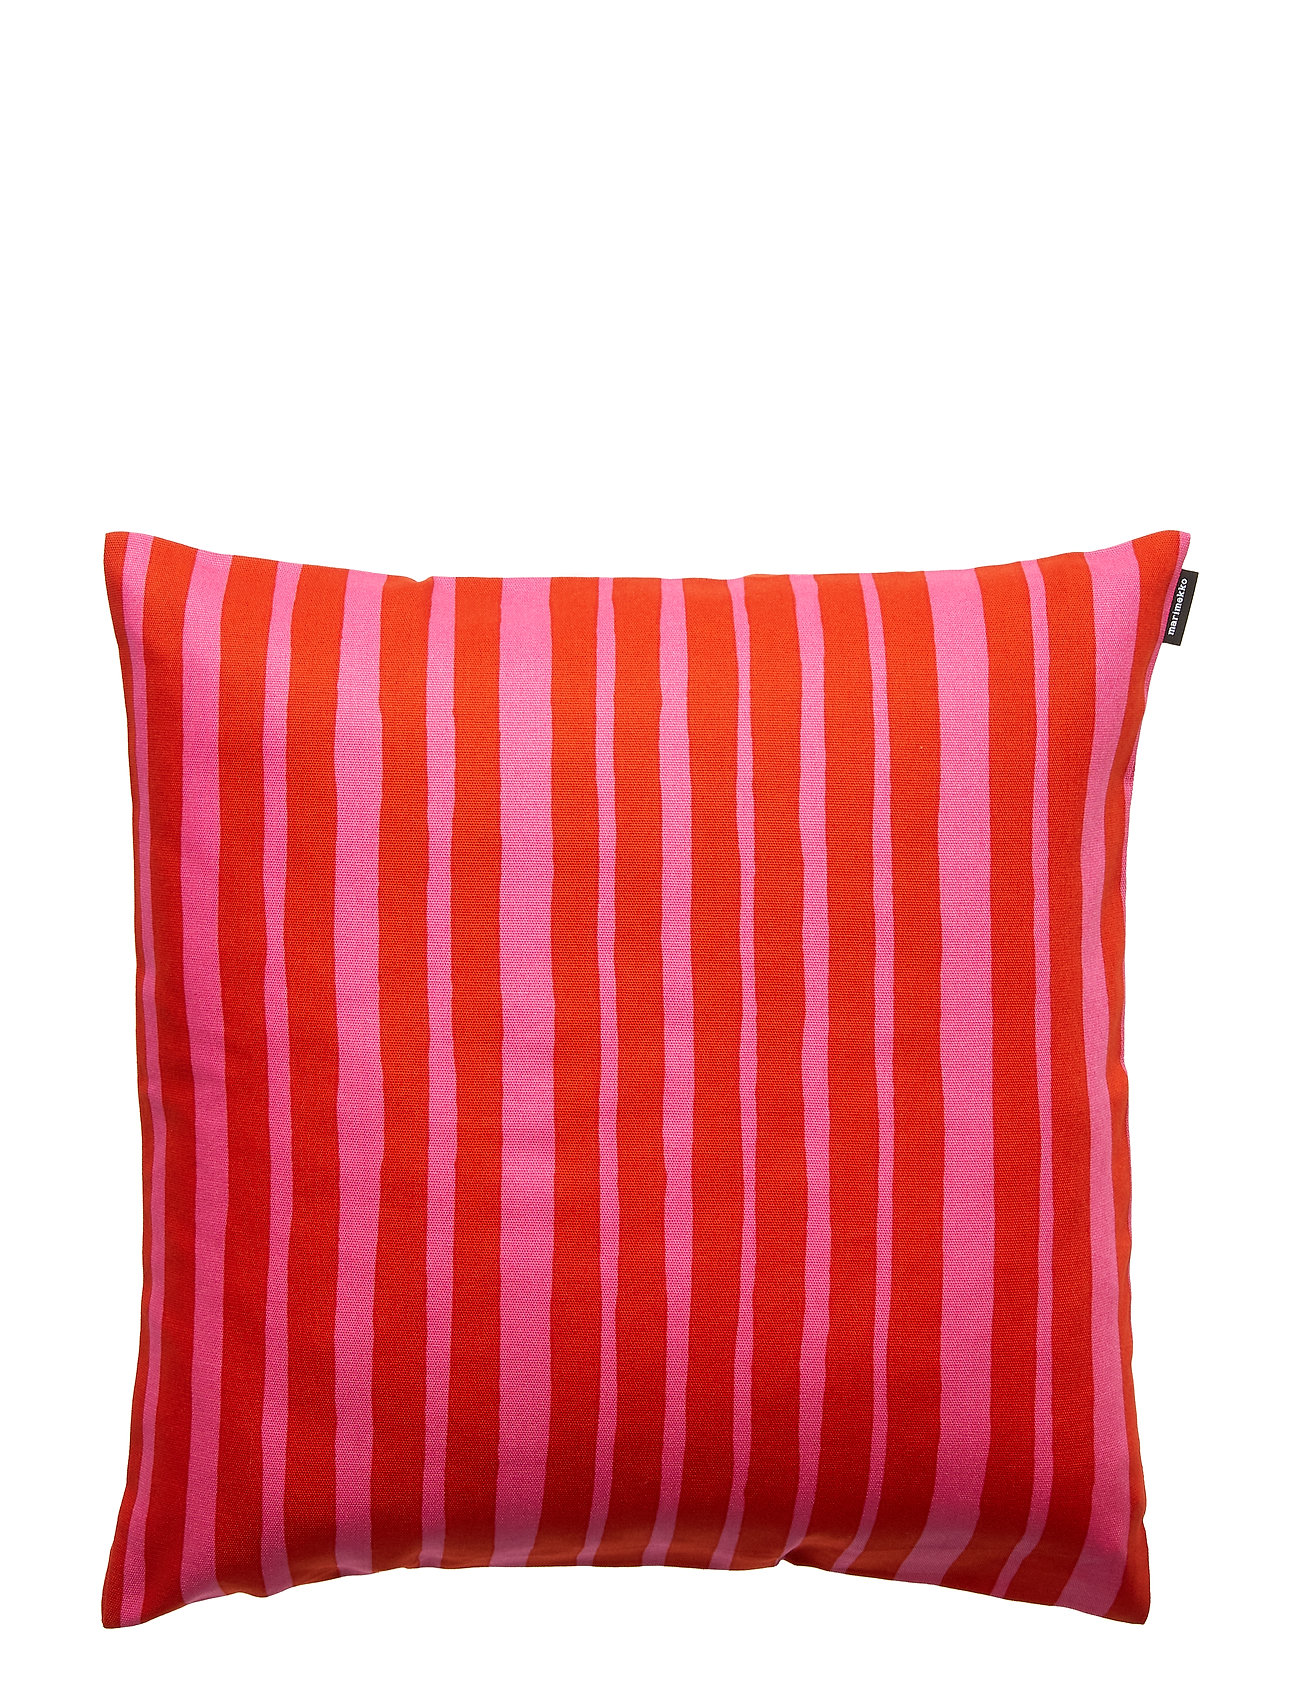 Marimekko Home RAIDE CUSHION COVER - RED, PINK